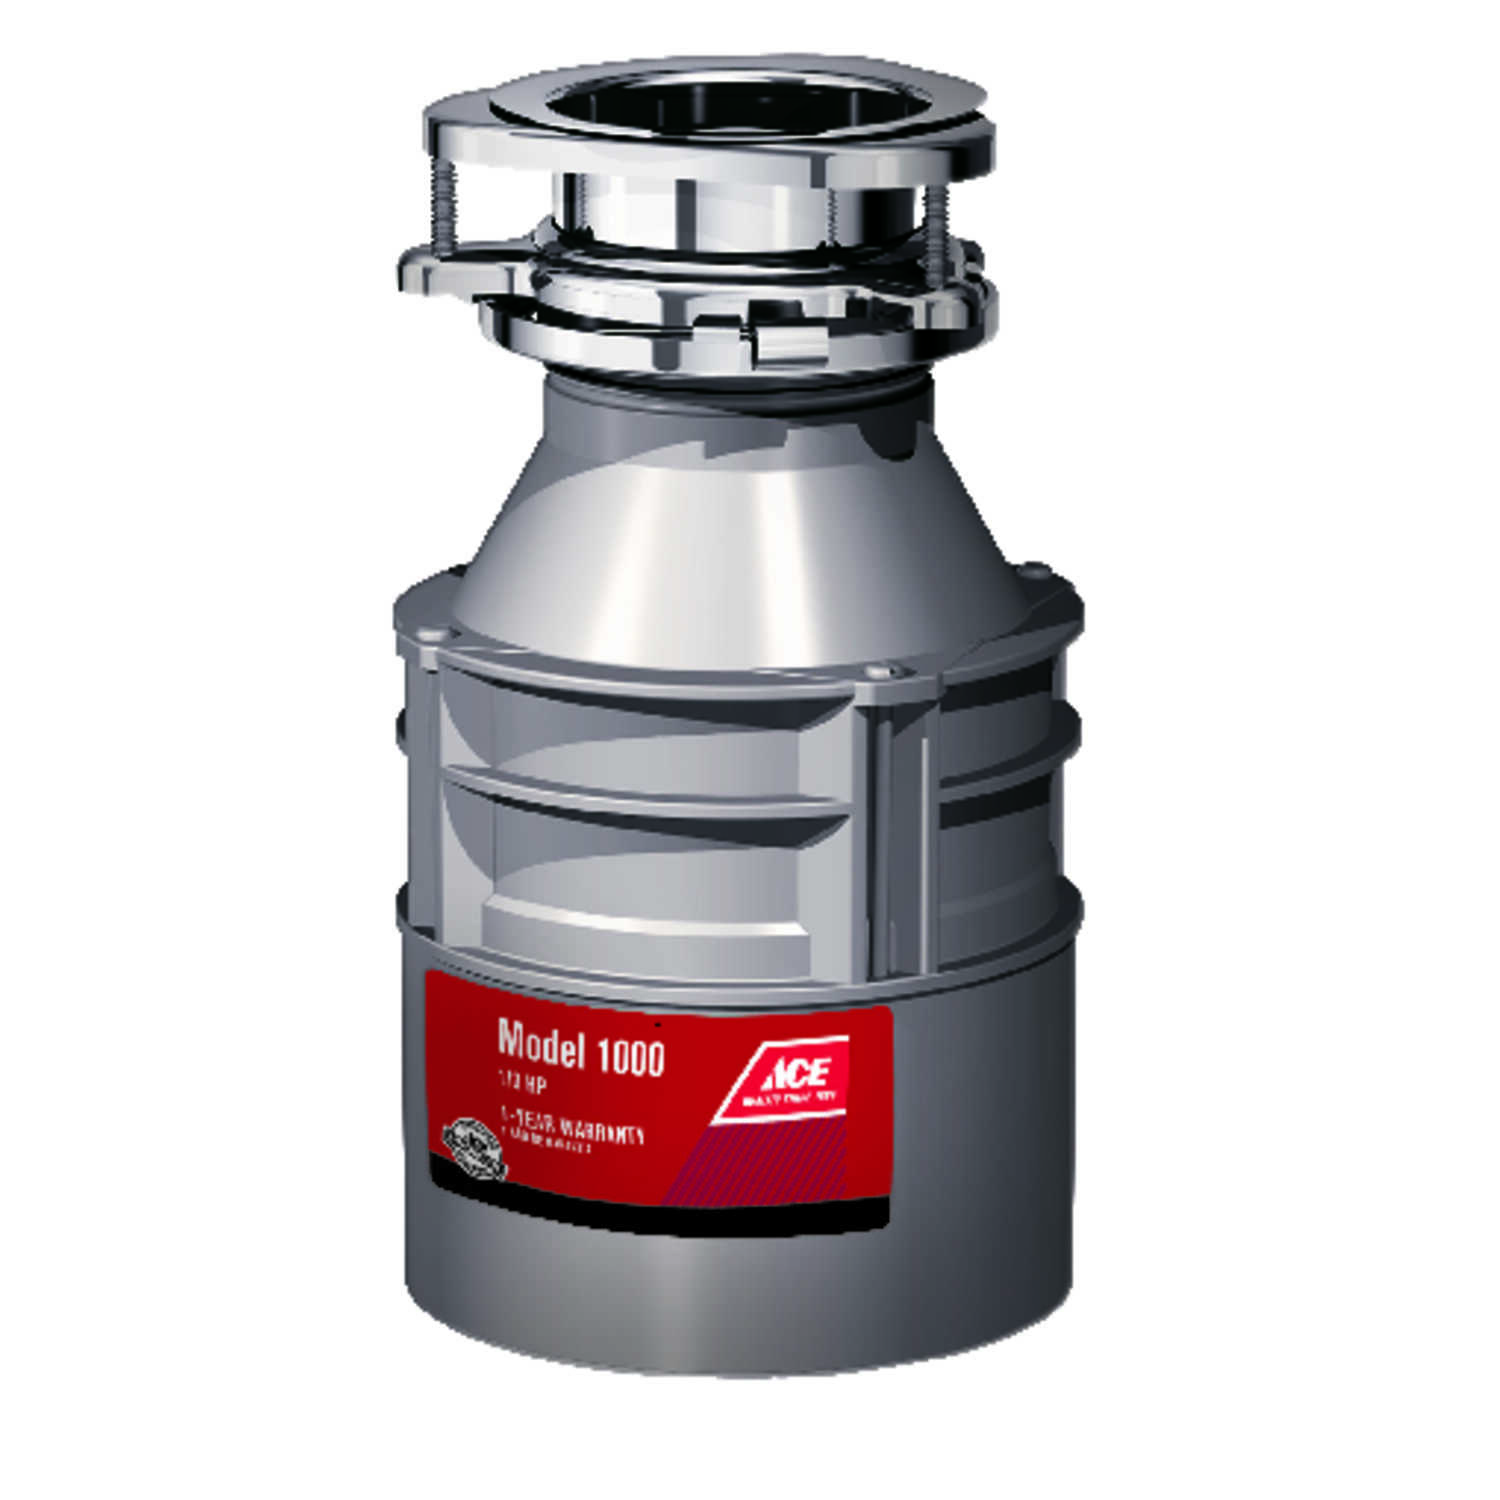 Ace garbage disposal 13 hp gray ace hardware ace garbage disposal 13 hp gray greentooth Gallery